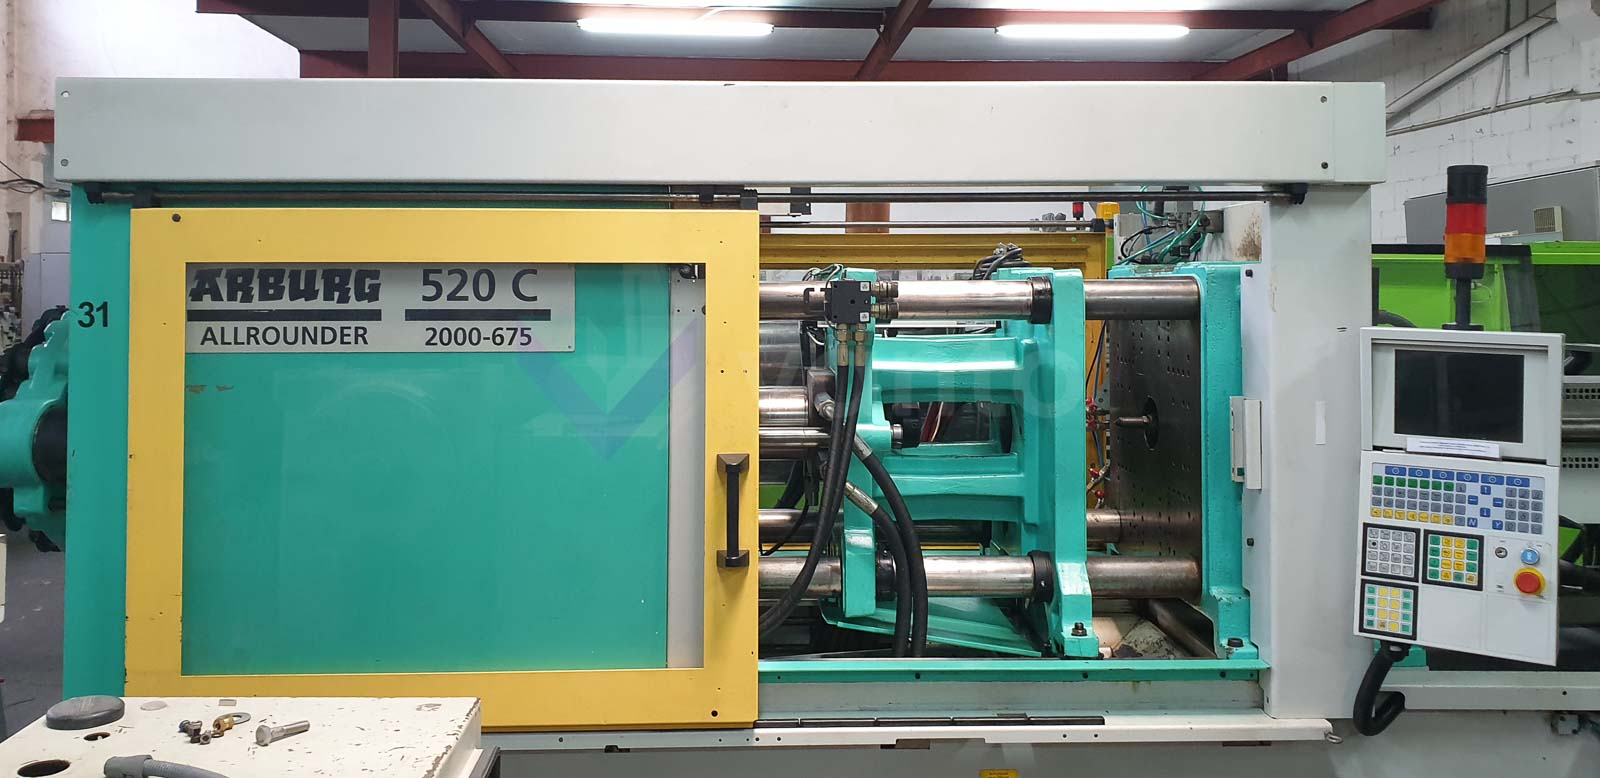 ARBURG 520C 2000-675 200t injection molding machine (2000) id10564